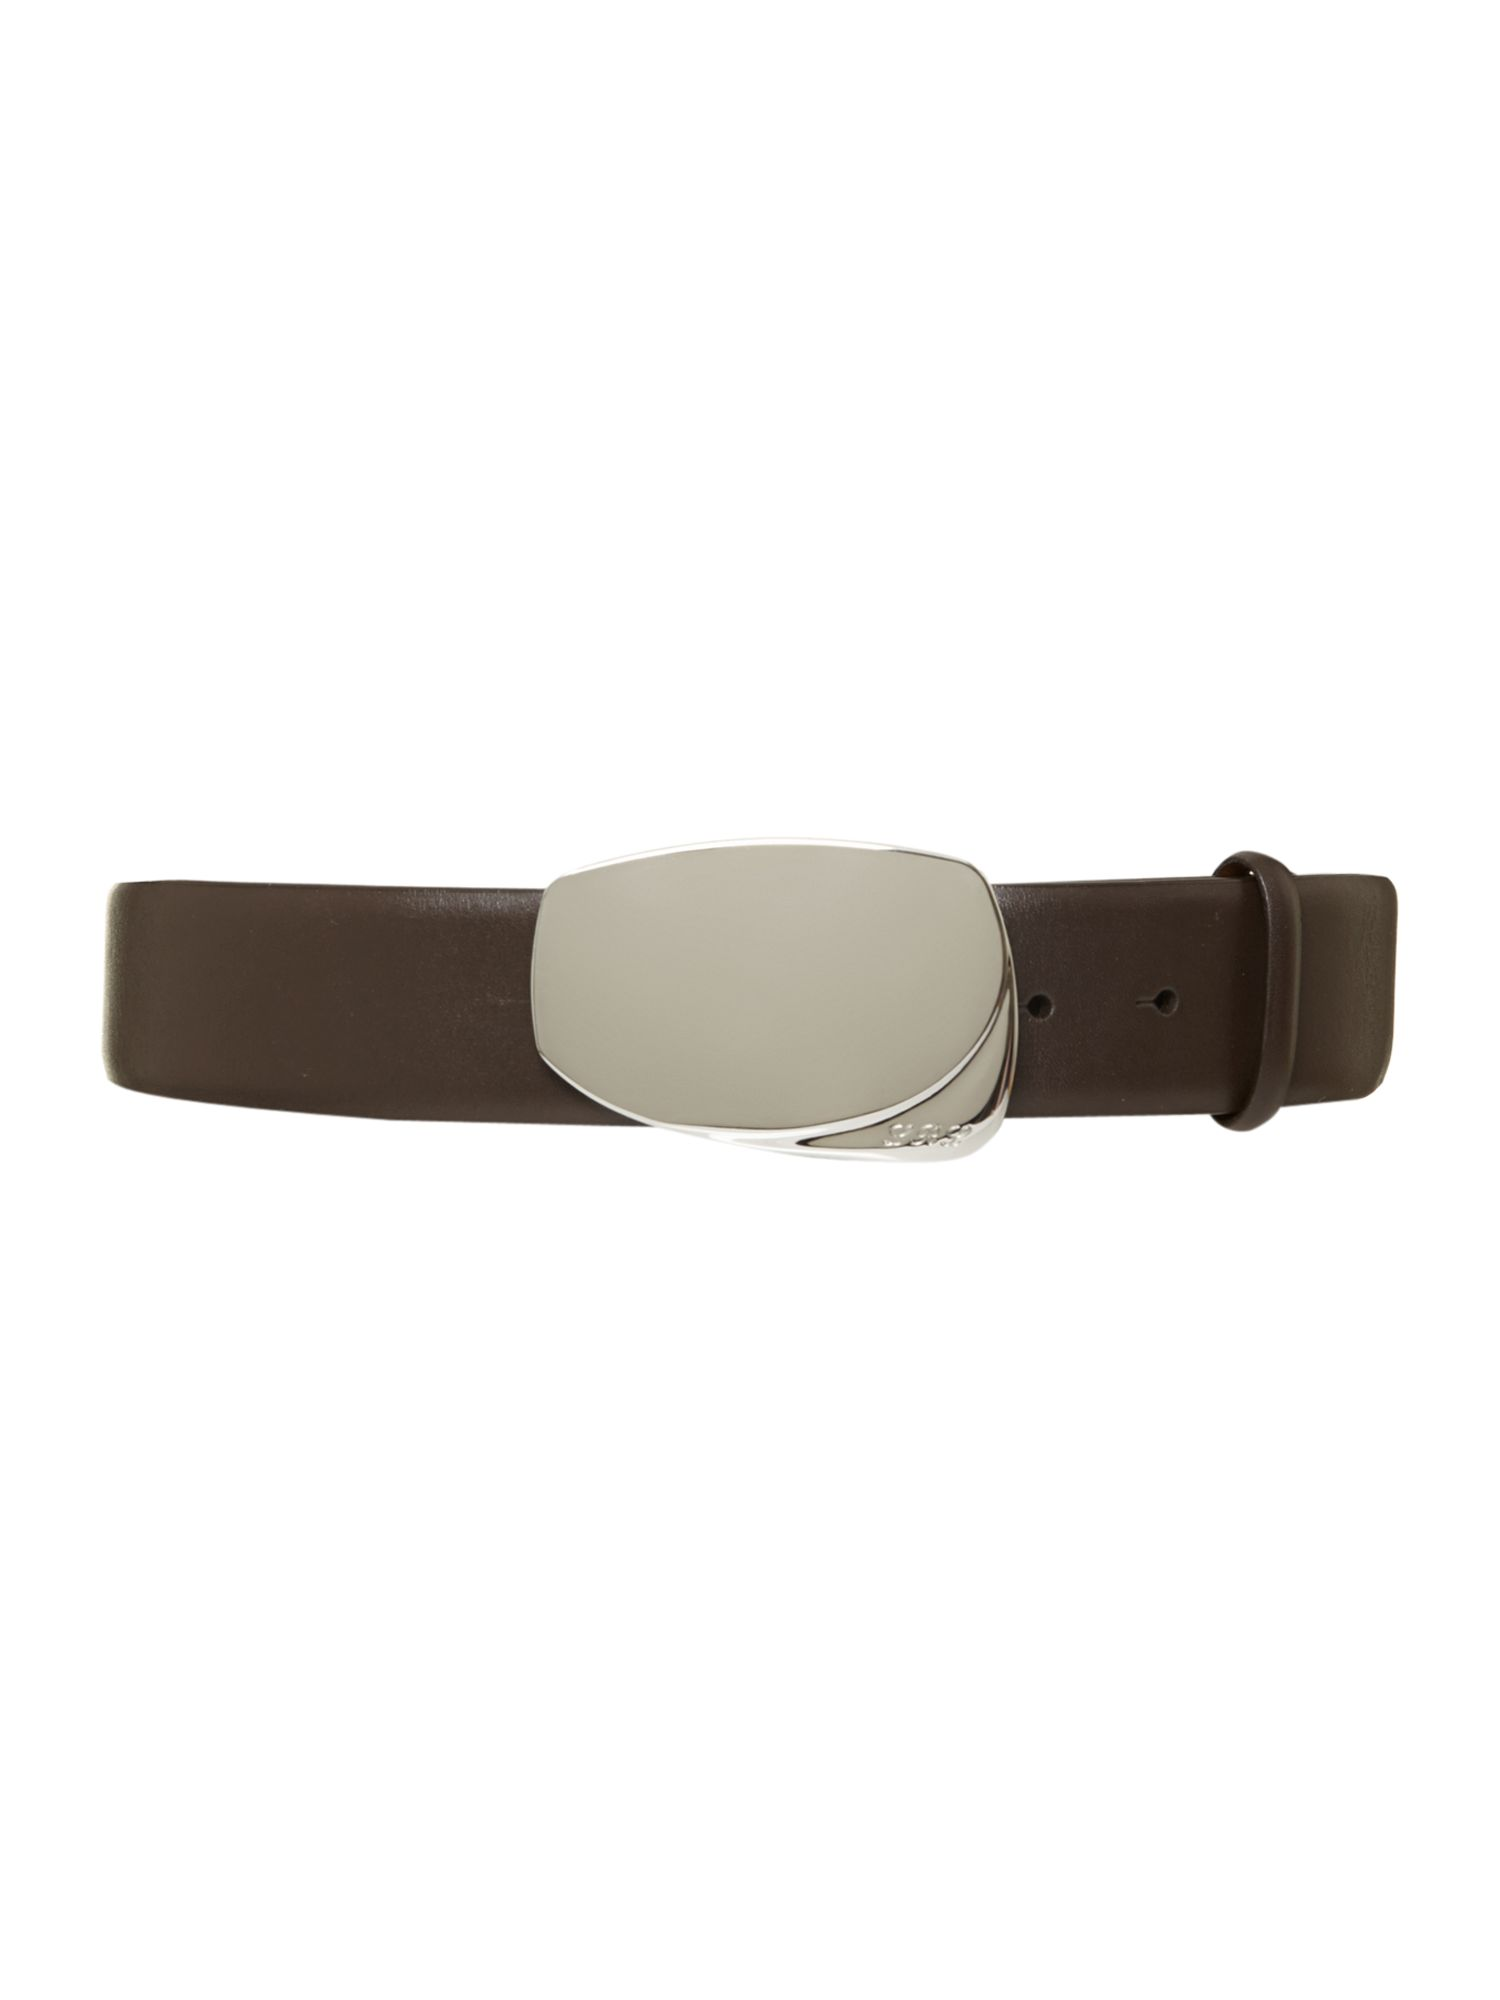 Cowhide belt with deco buckle